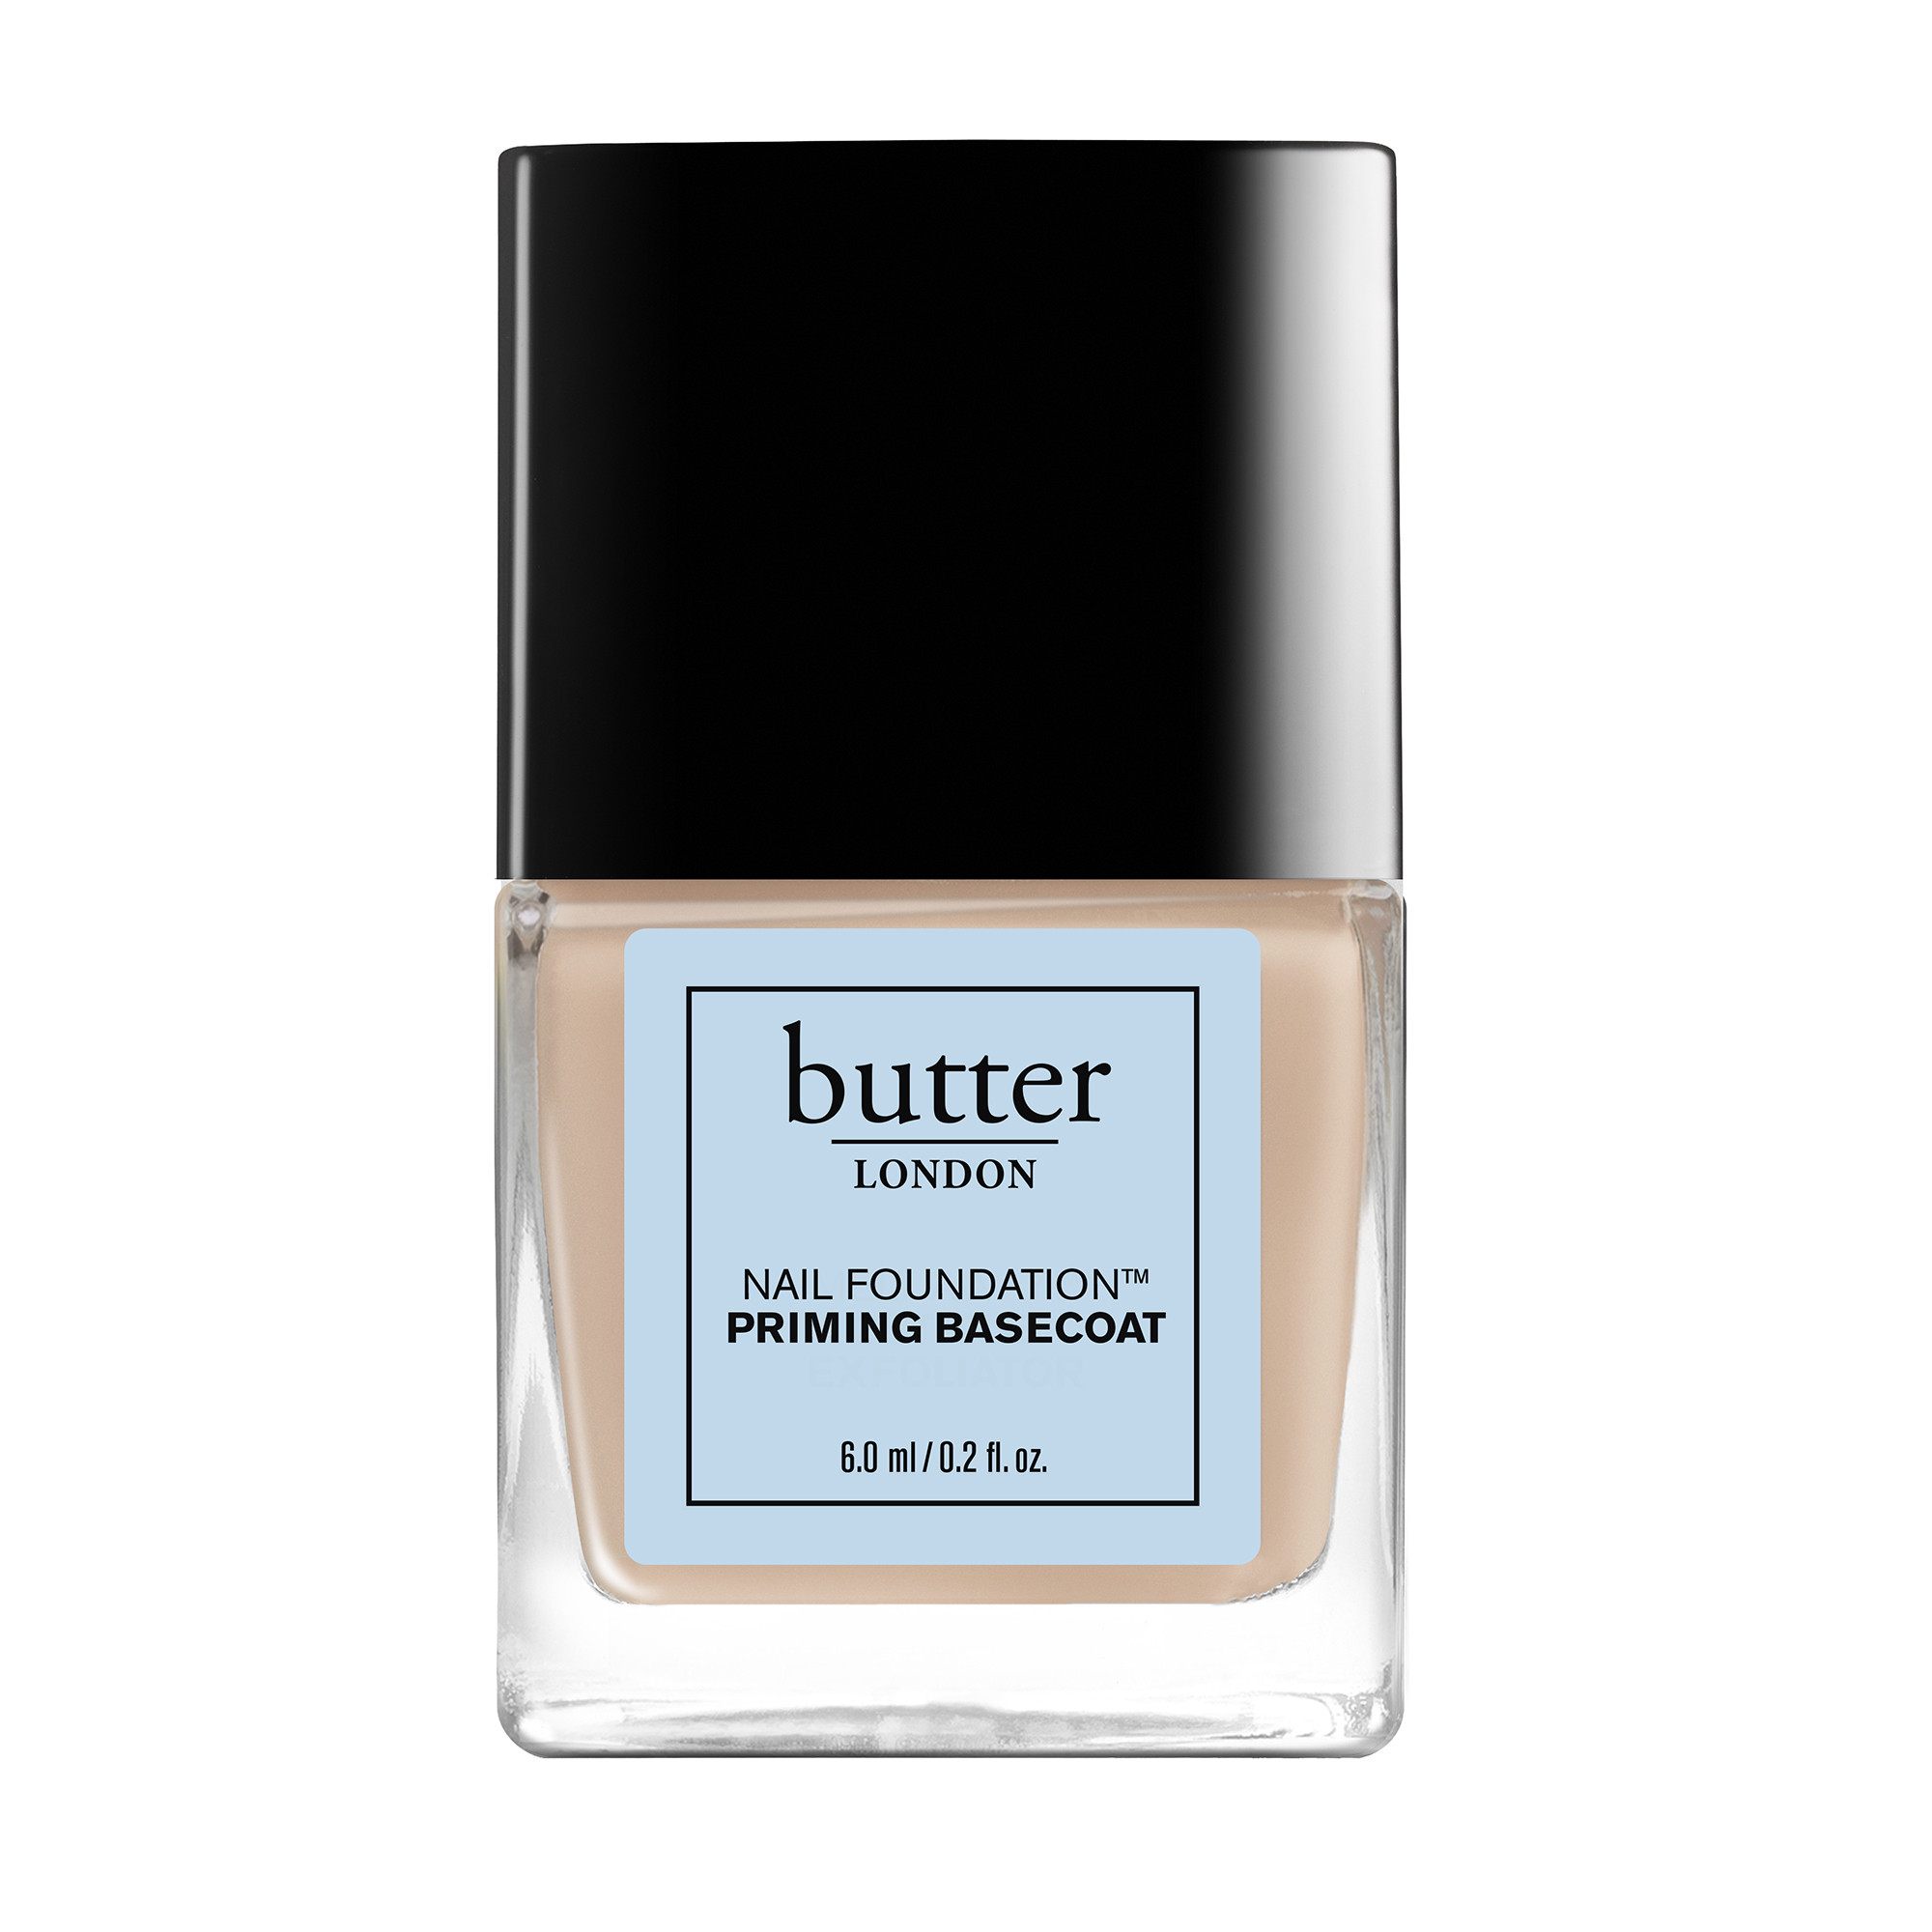 Mini Nail Foundation Priming Basecoat